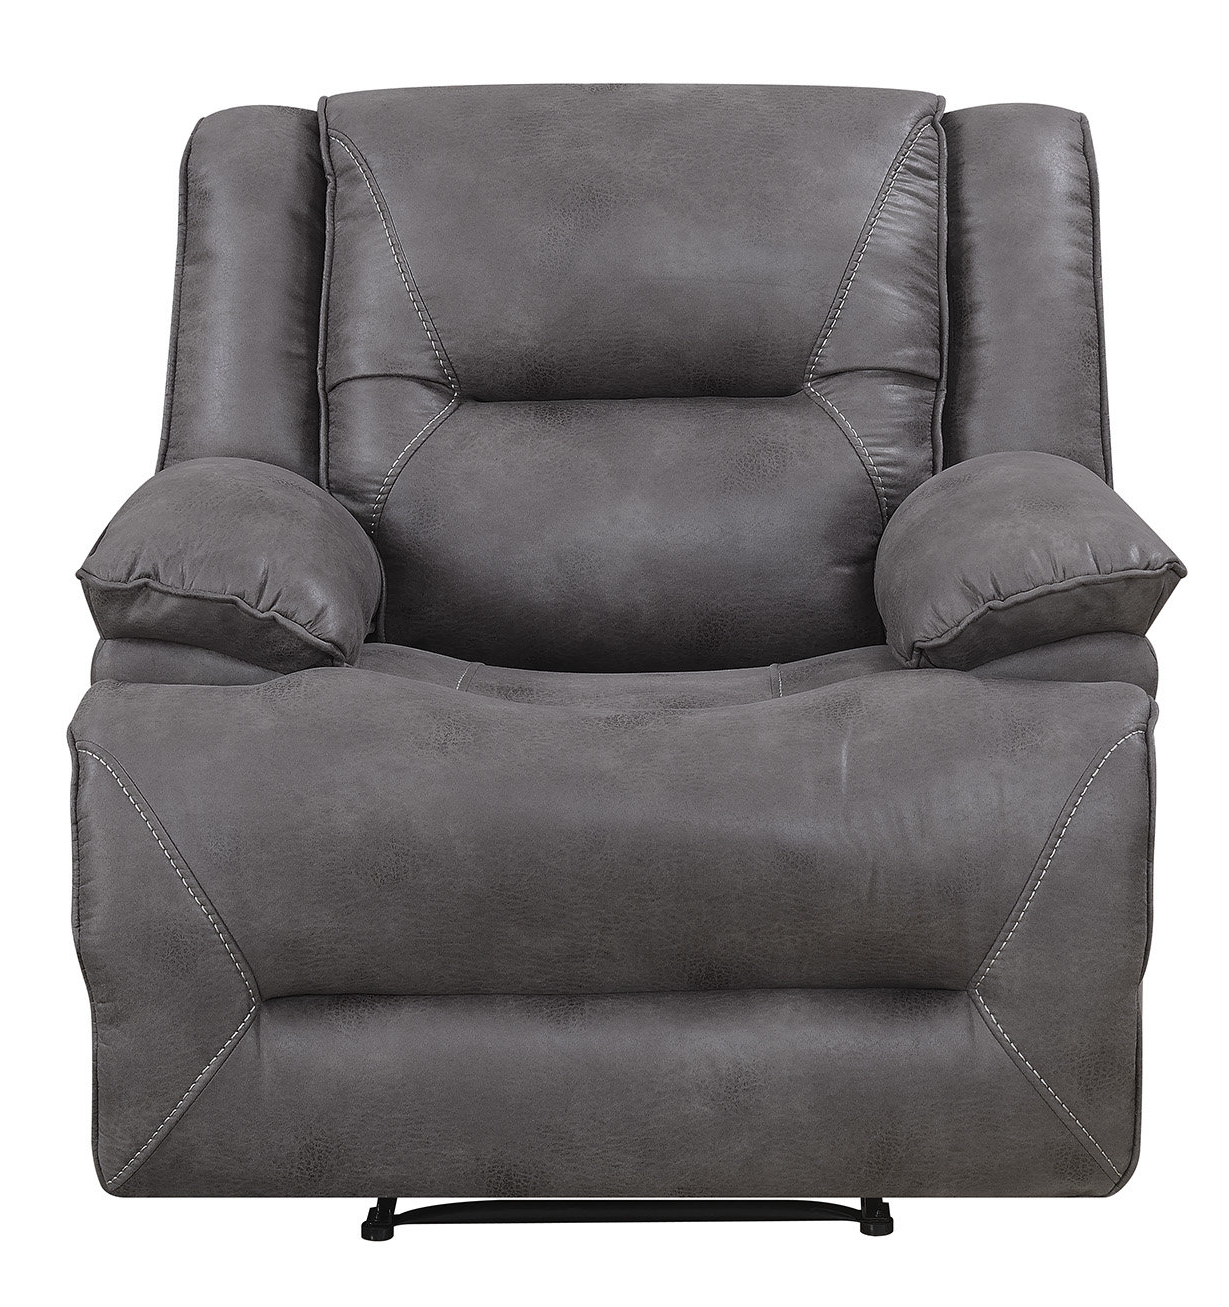 Most Popular Dale Iii Polyurethane Swivel Glider Recliners For Darby Home Co Finlay Recliner (View 11 of 20)